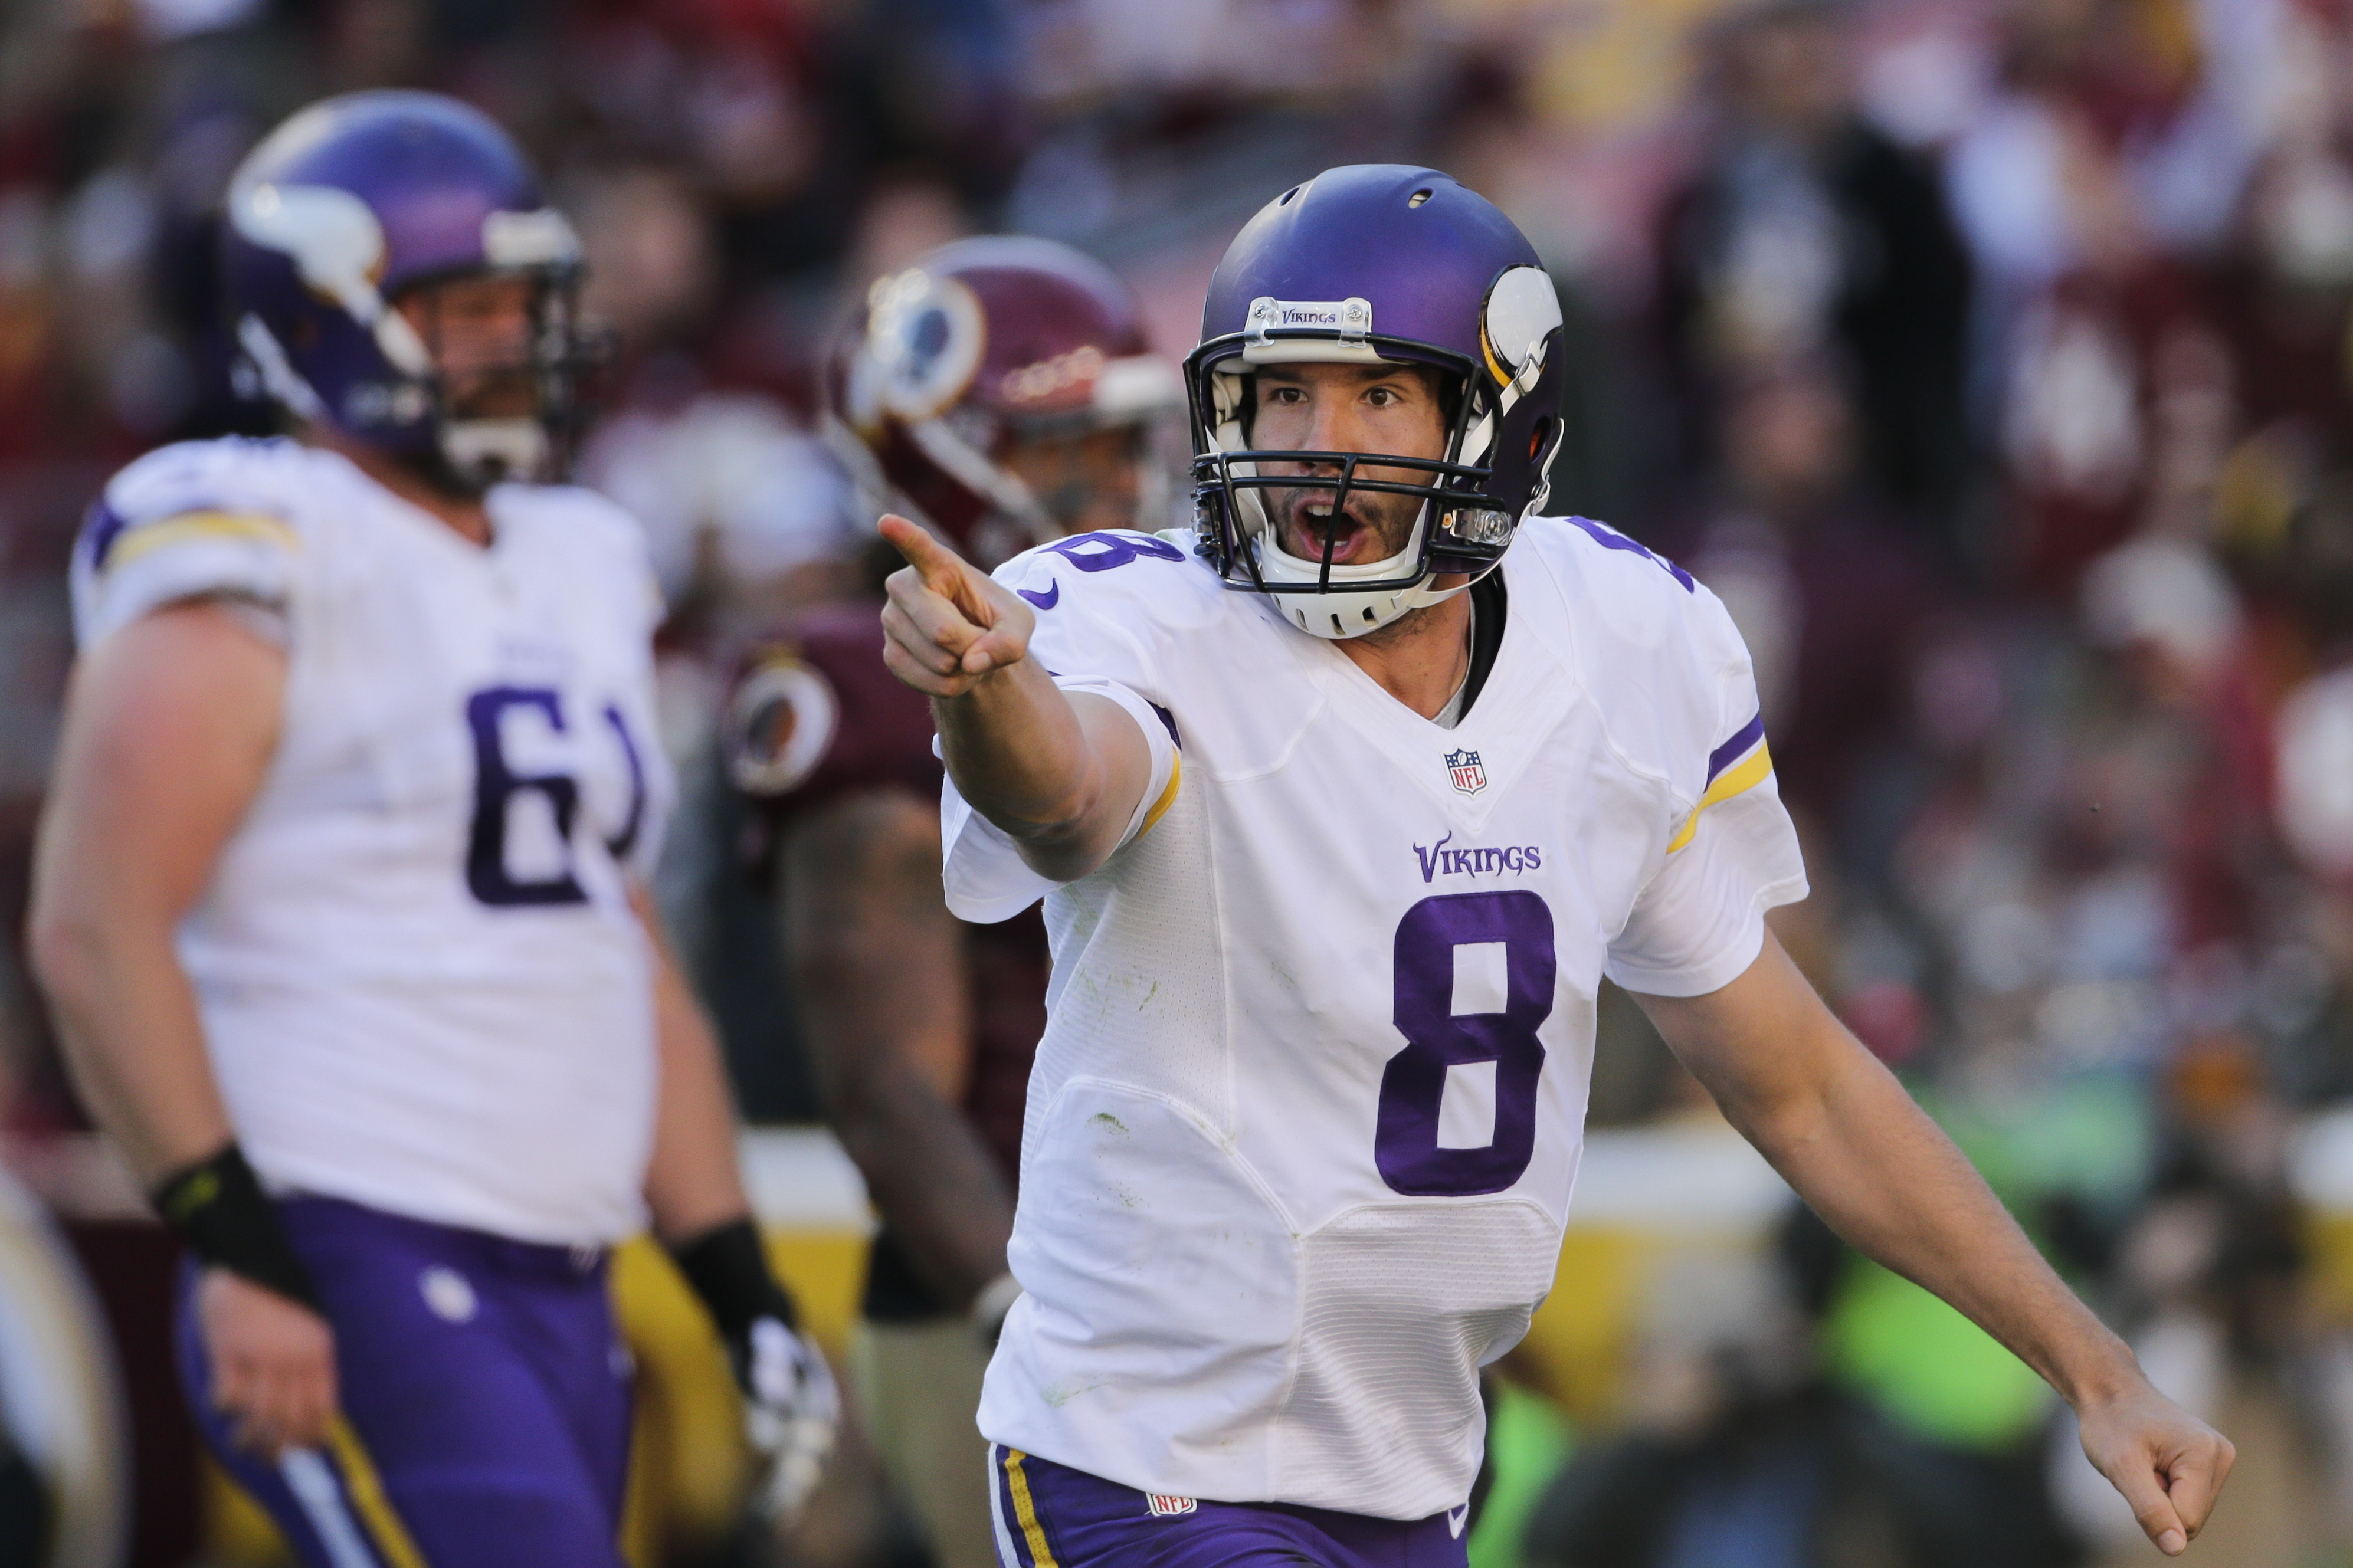 Minnesota Vikings quarterback Sam Bradford (8) celebrates wide receiver Adam Thielen's touchdown during the first half of an NFL football game against the Washington Redskins in Landover, Md., Sunday, Nov. 13, 2016. (AP Photo/Mark Tenally)